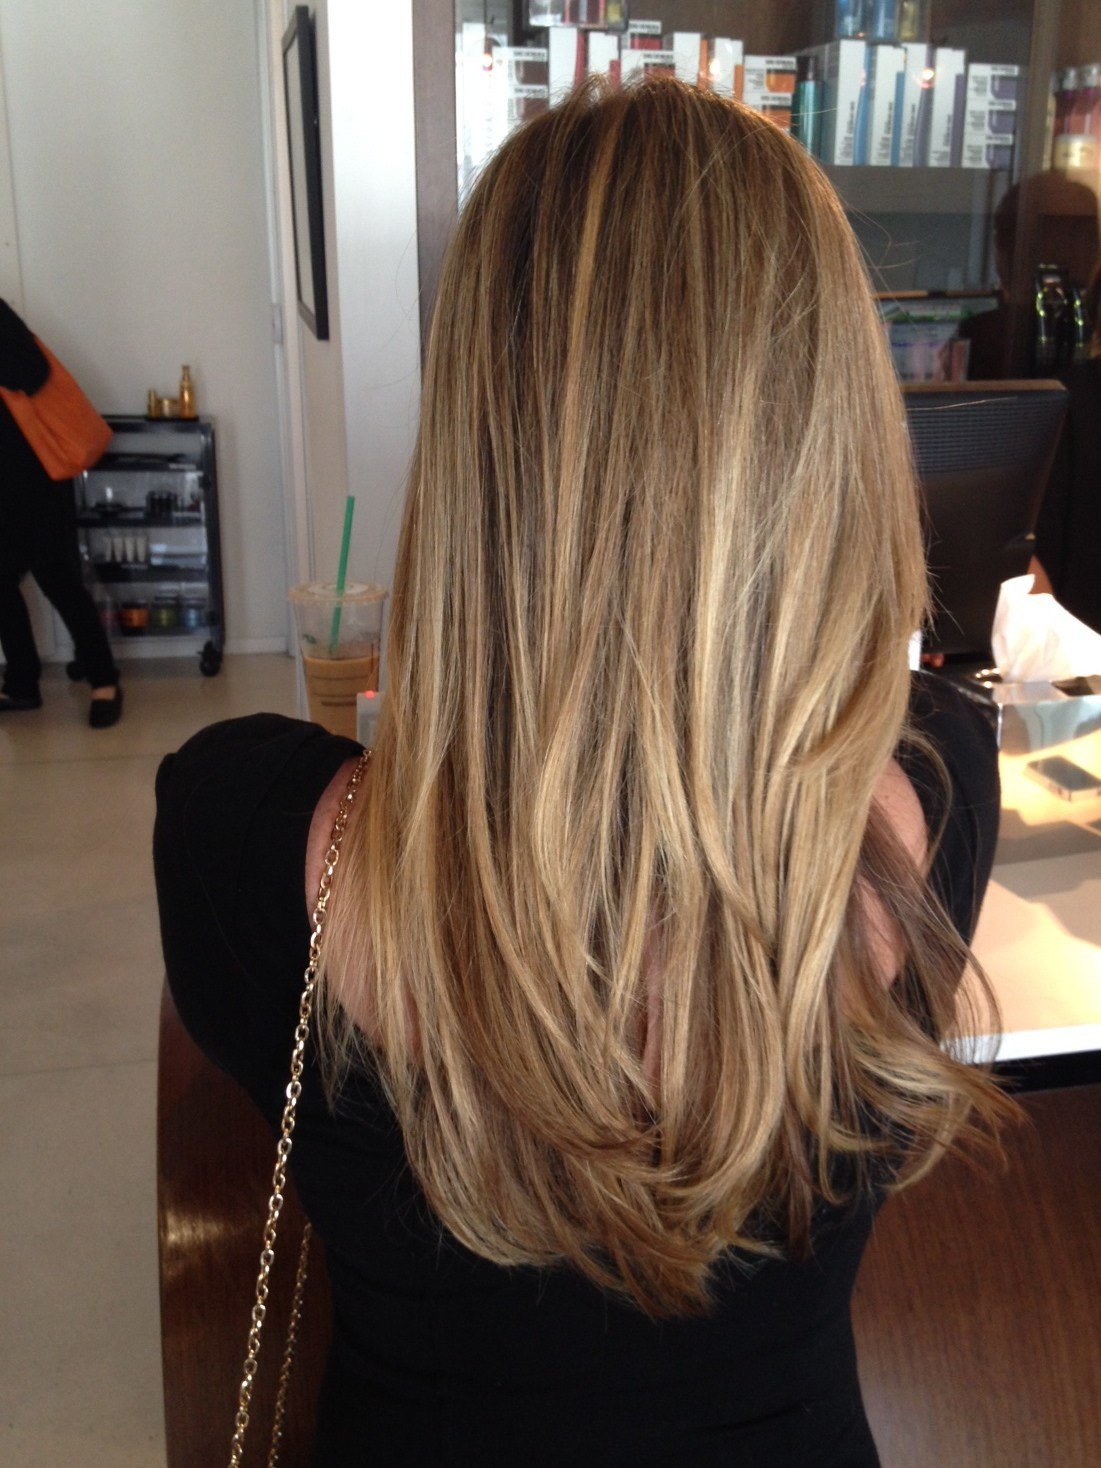 The Best A Haircolor Blog Hair Color By Erick Orellana Pictures